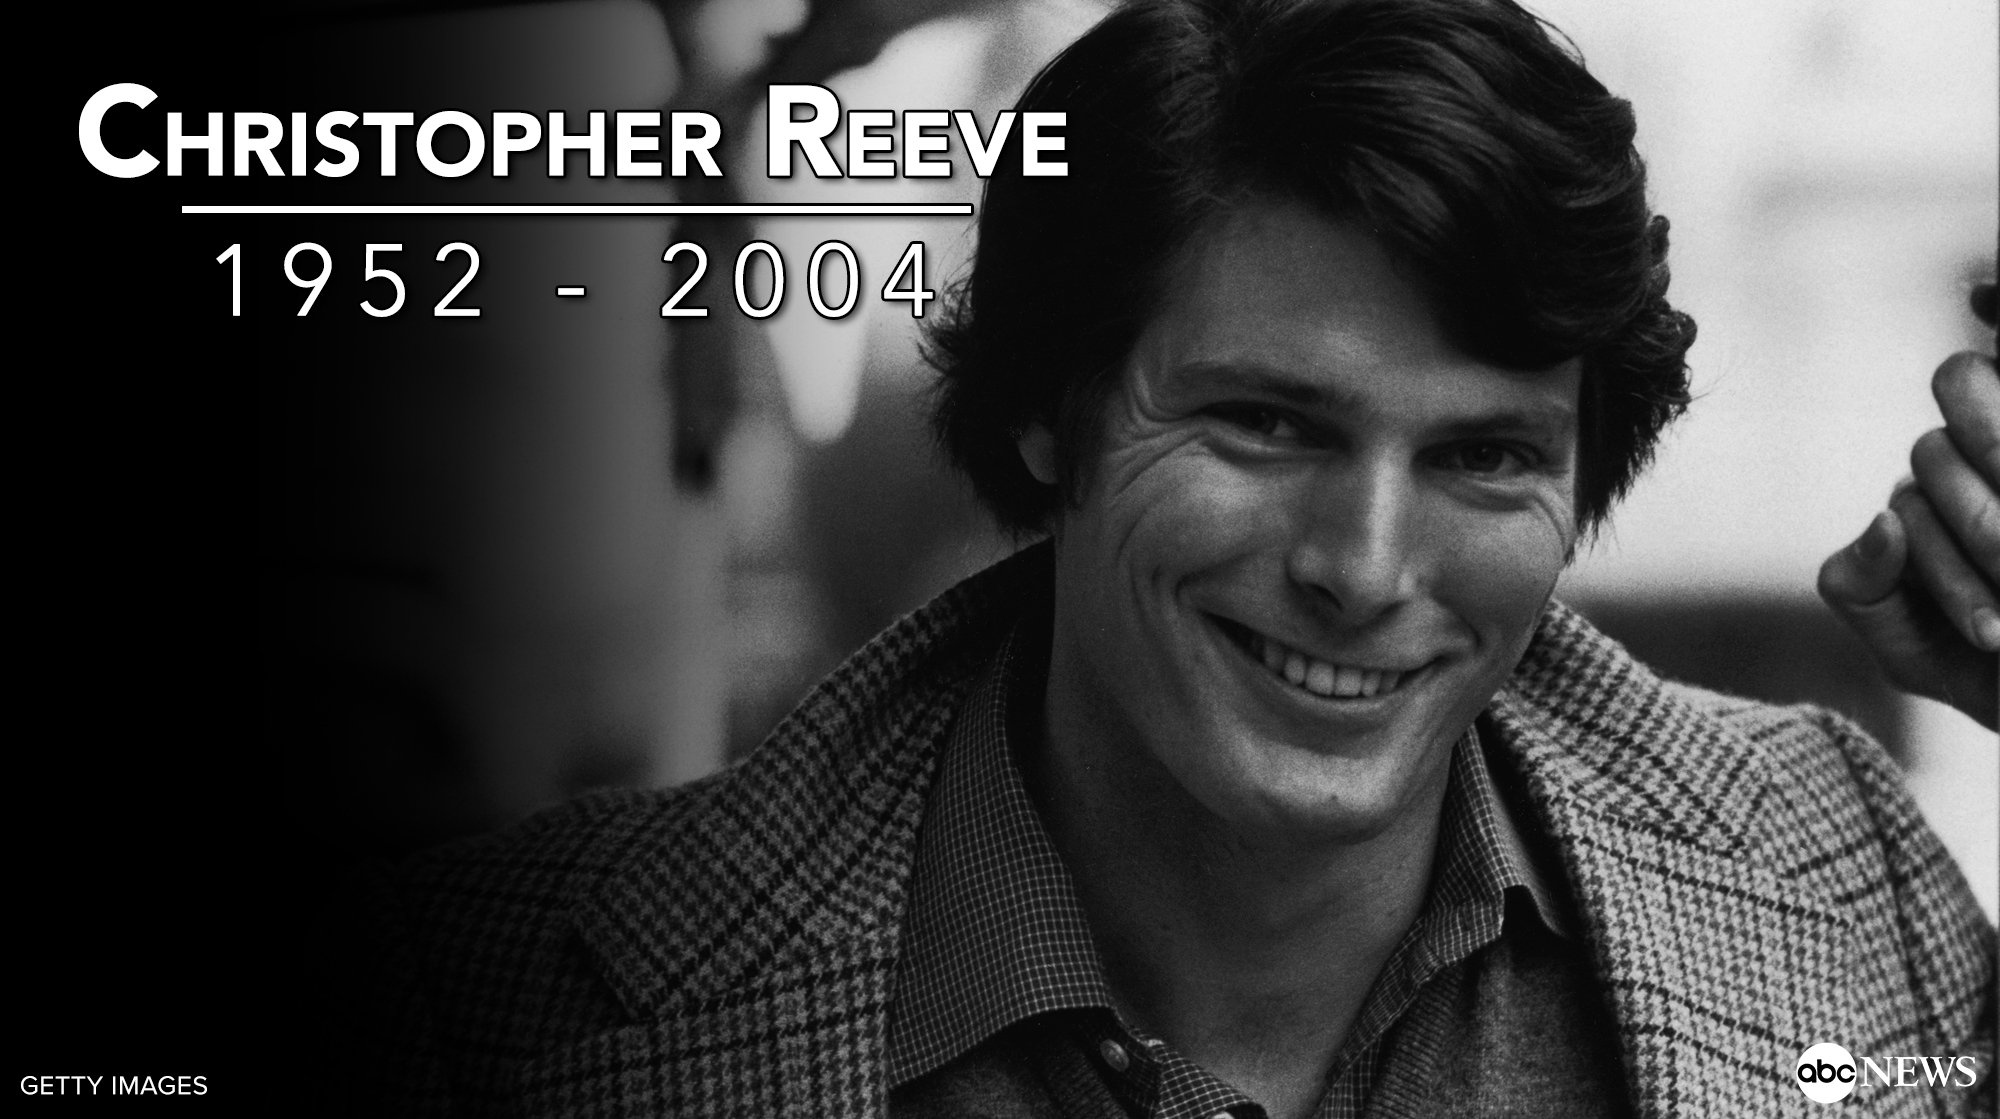 Christopher Reeve, known for his role as Superman, and more, died on this day in 2004. Rest in peace... https://t.co/wFGFZufzyX